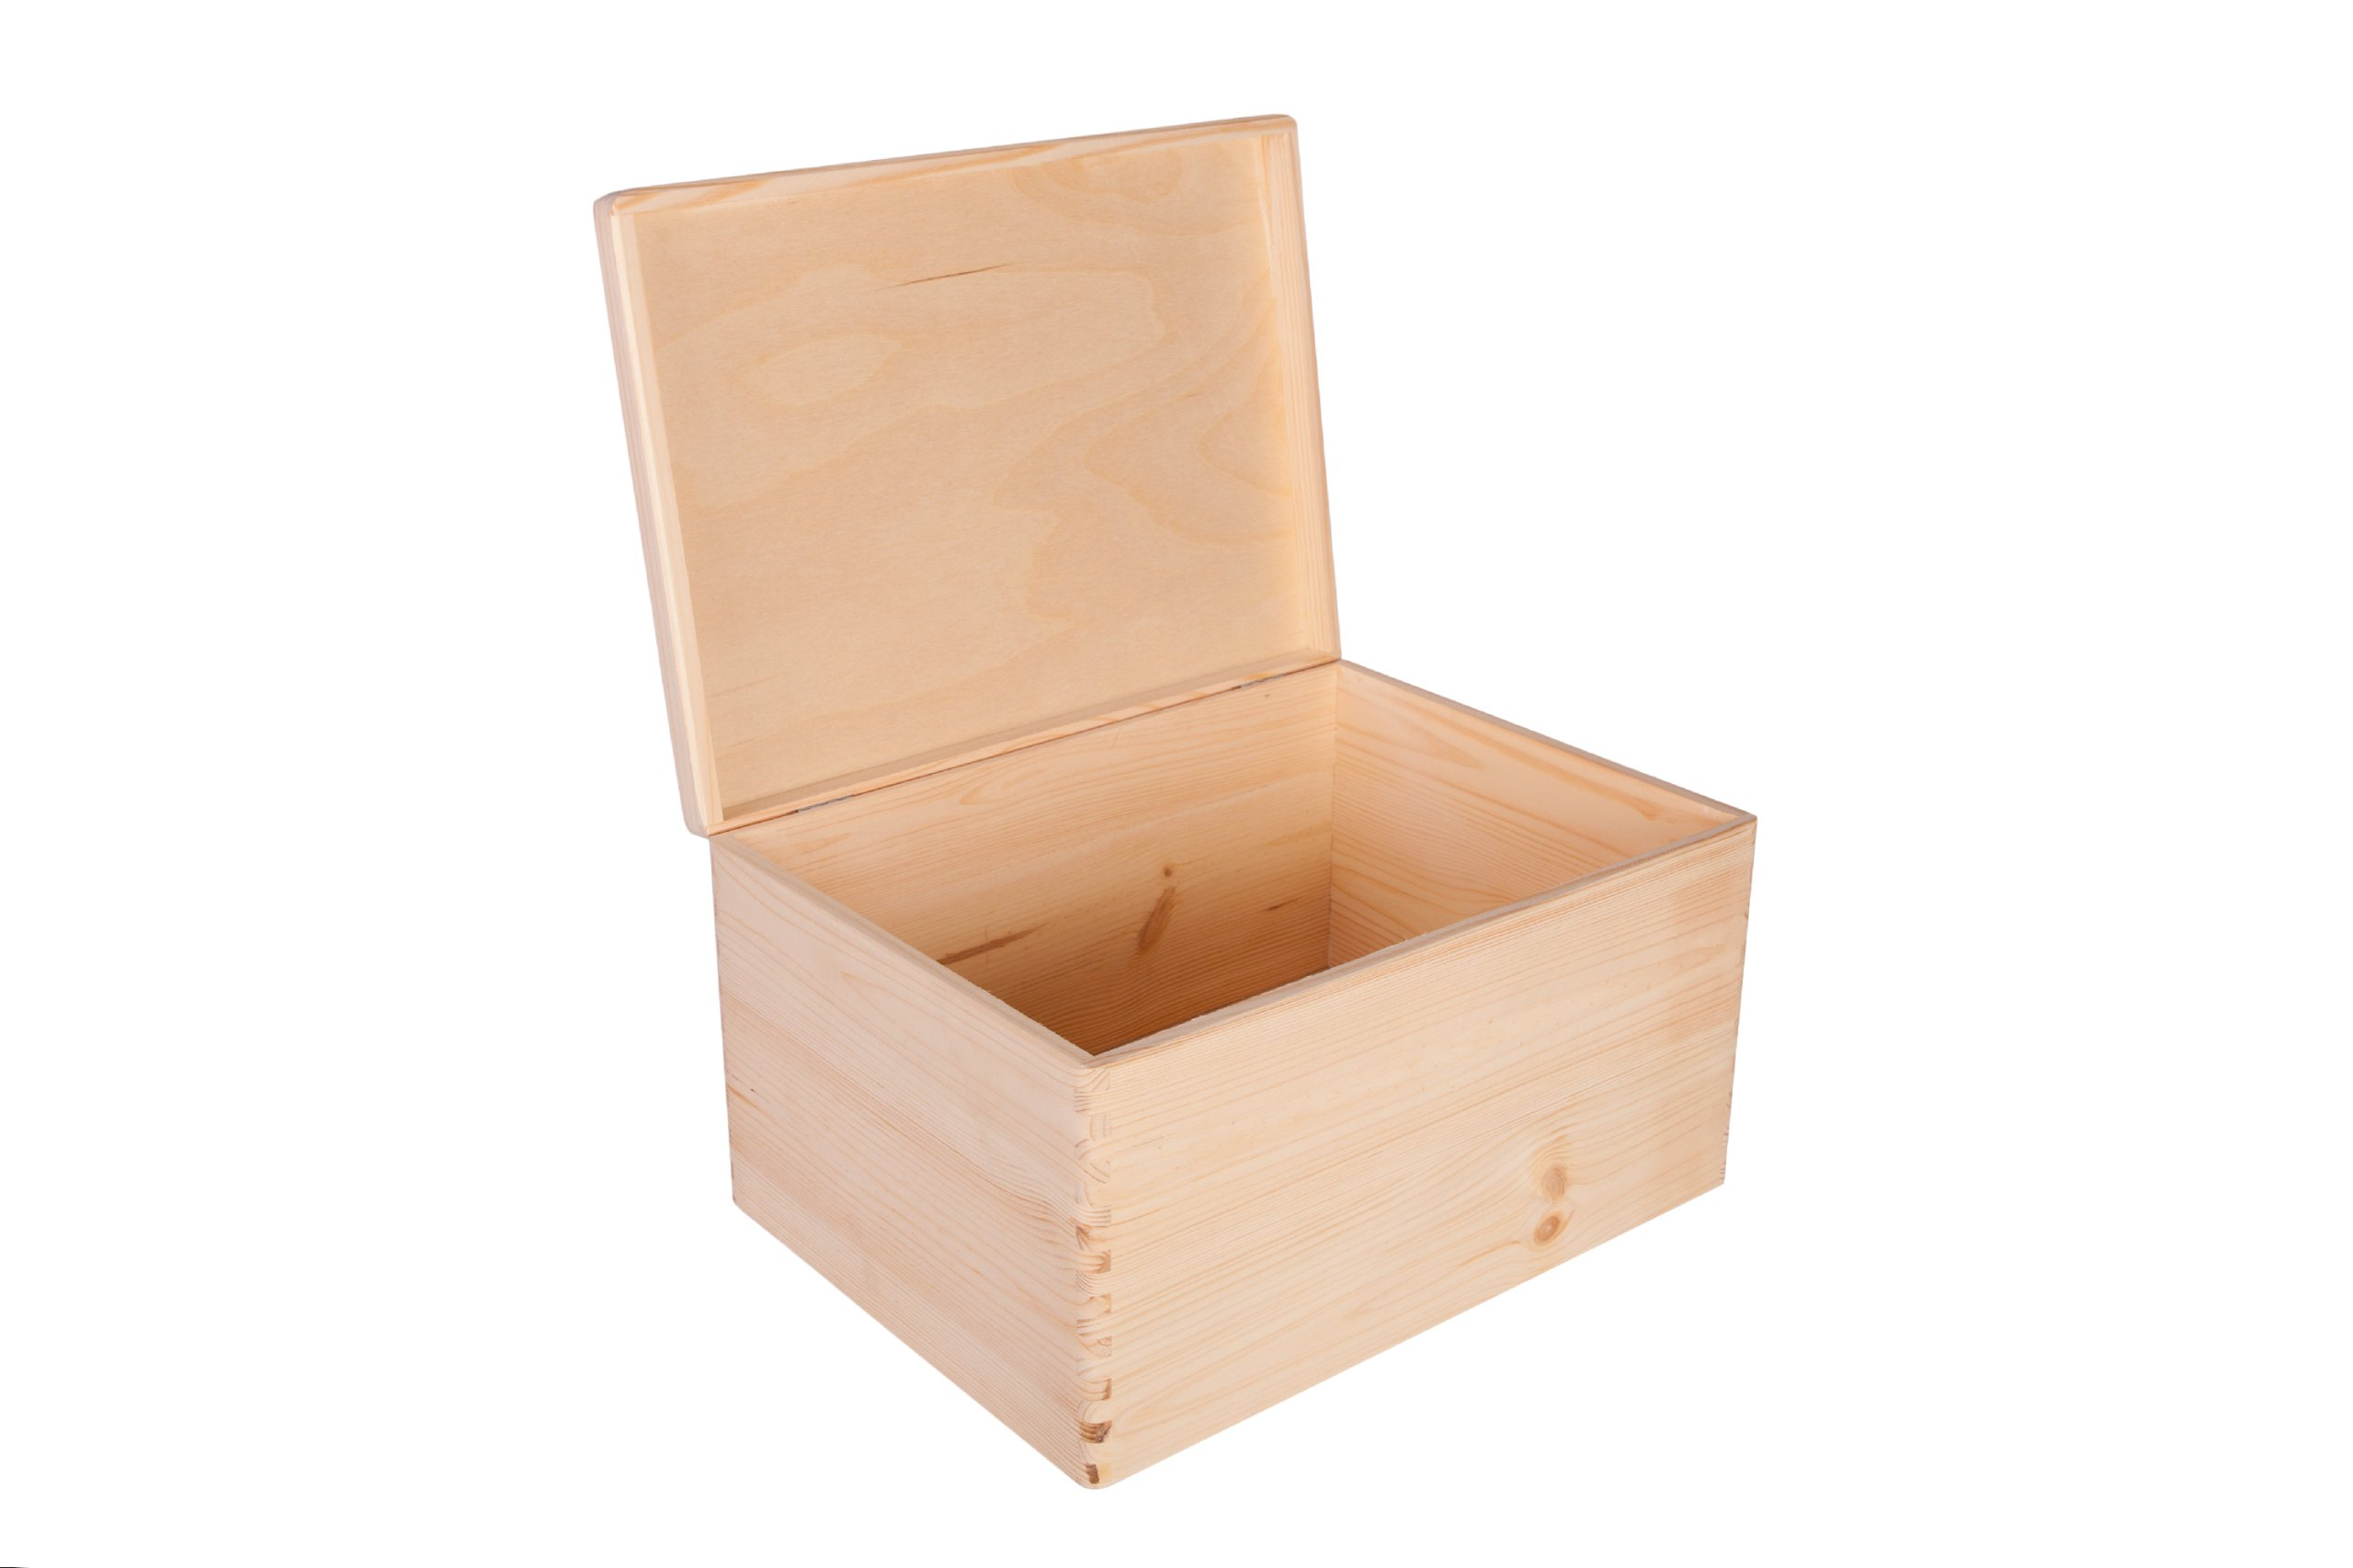 Item BOX WOODEN BOX CRATE CONTAINER 30x20